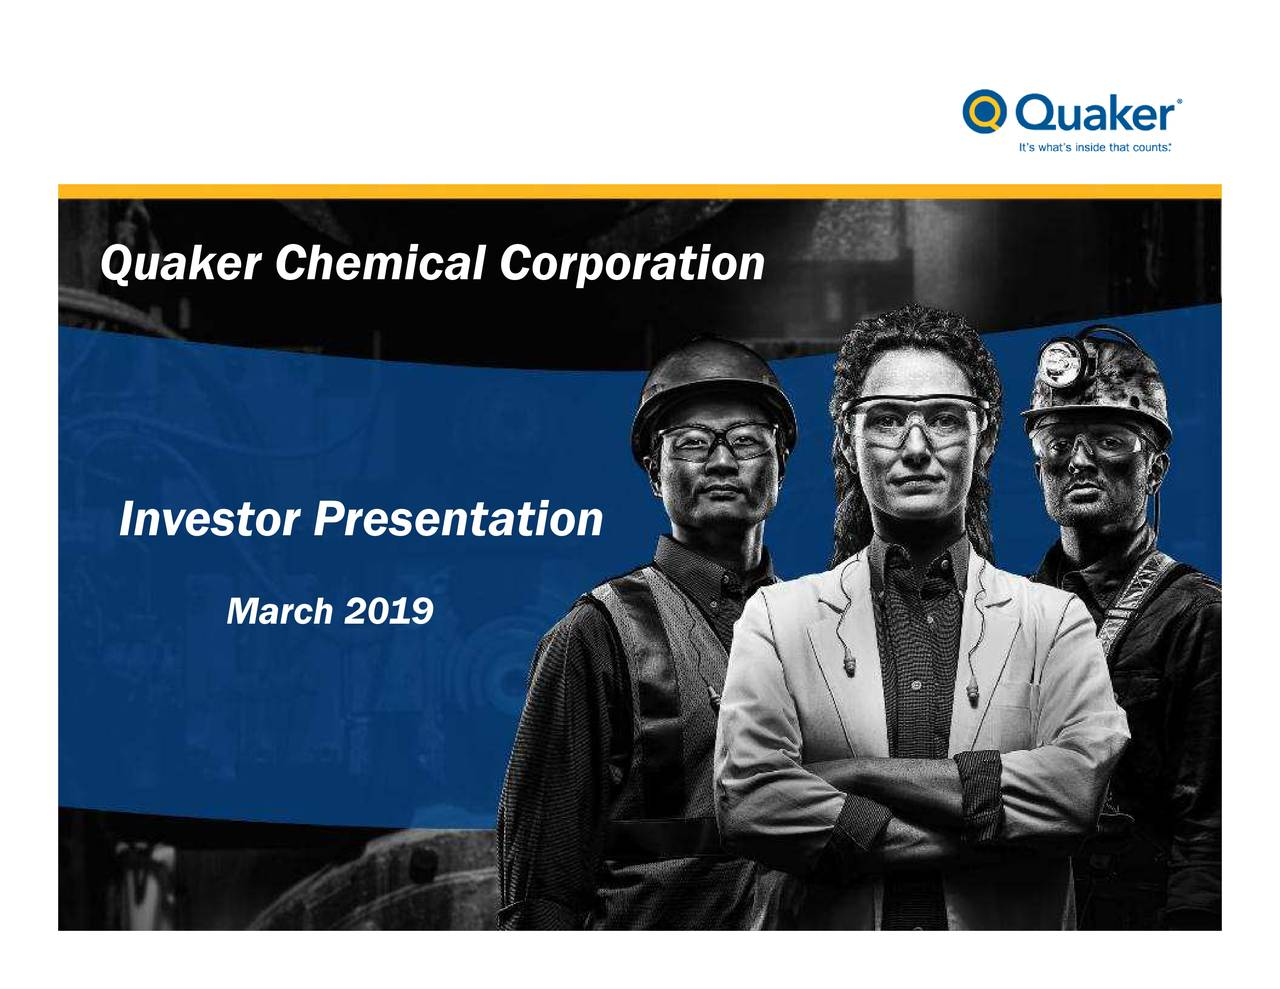 March 2019 Investor Presentation Quaker Chemical Corporation